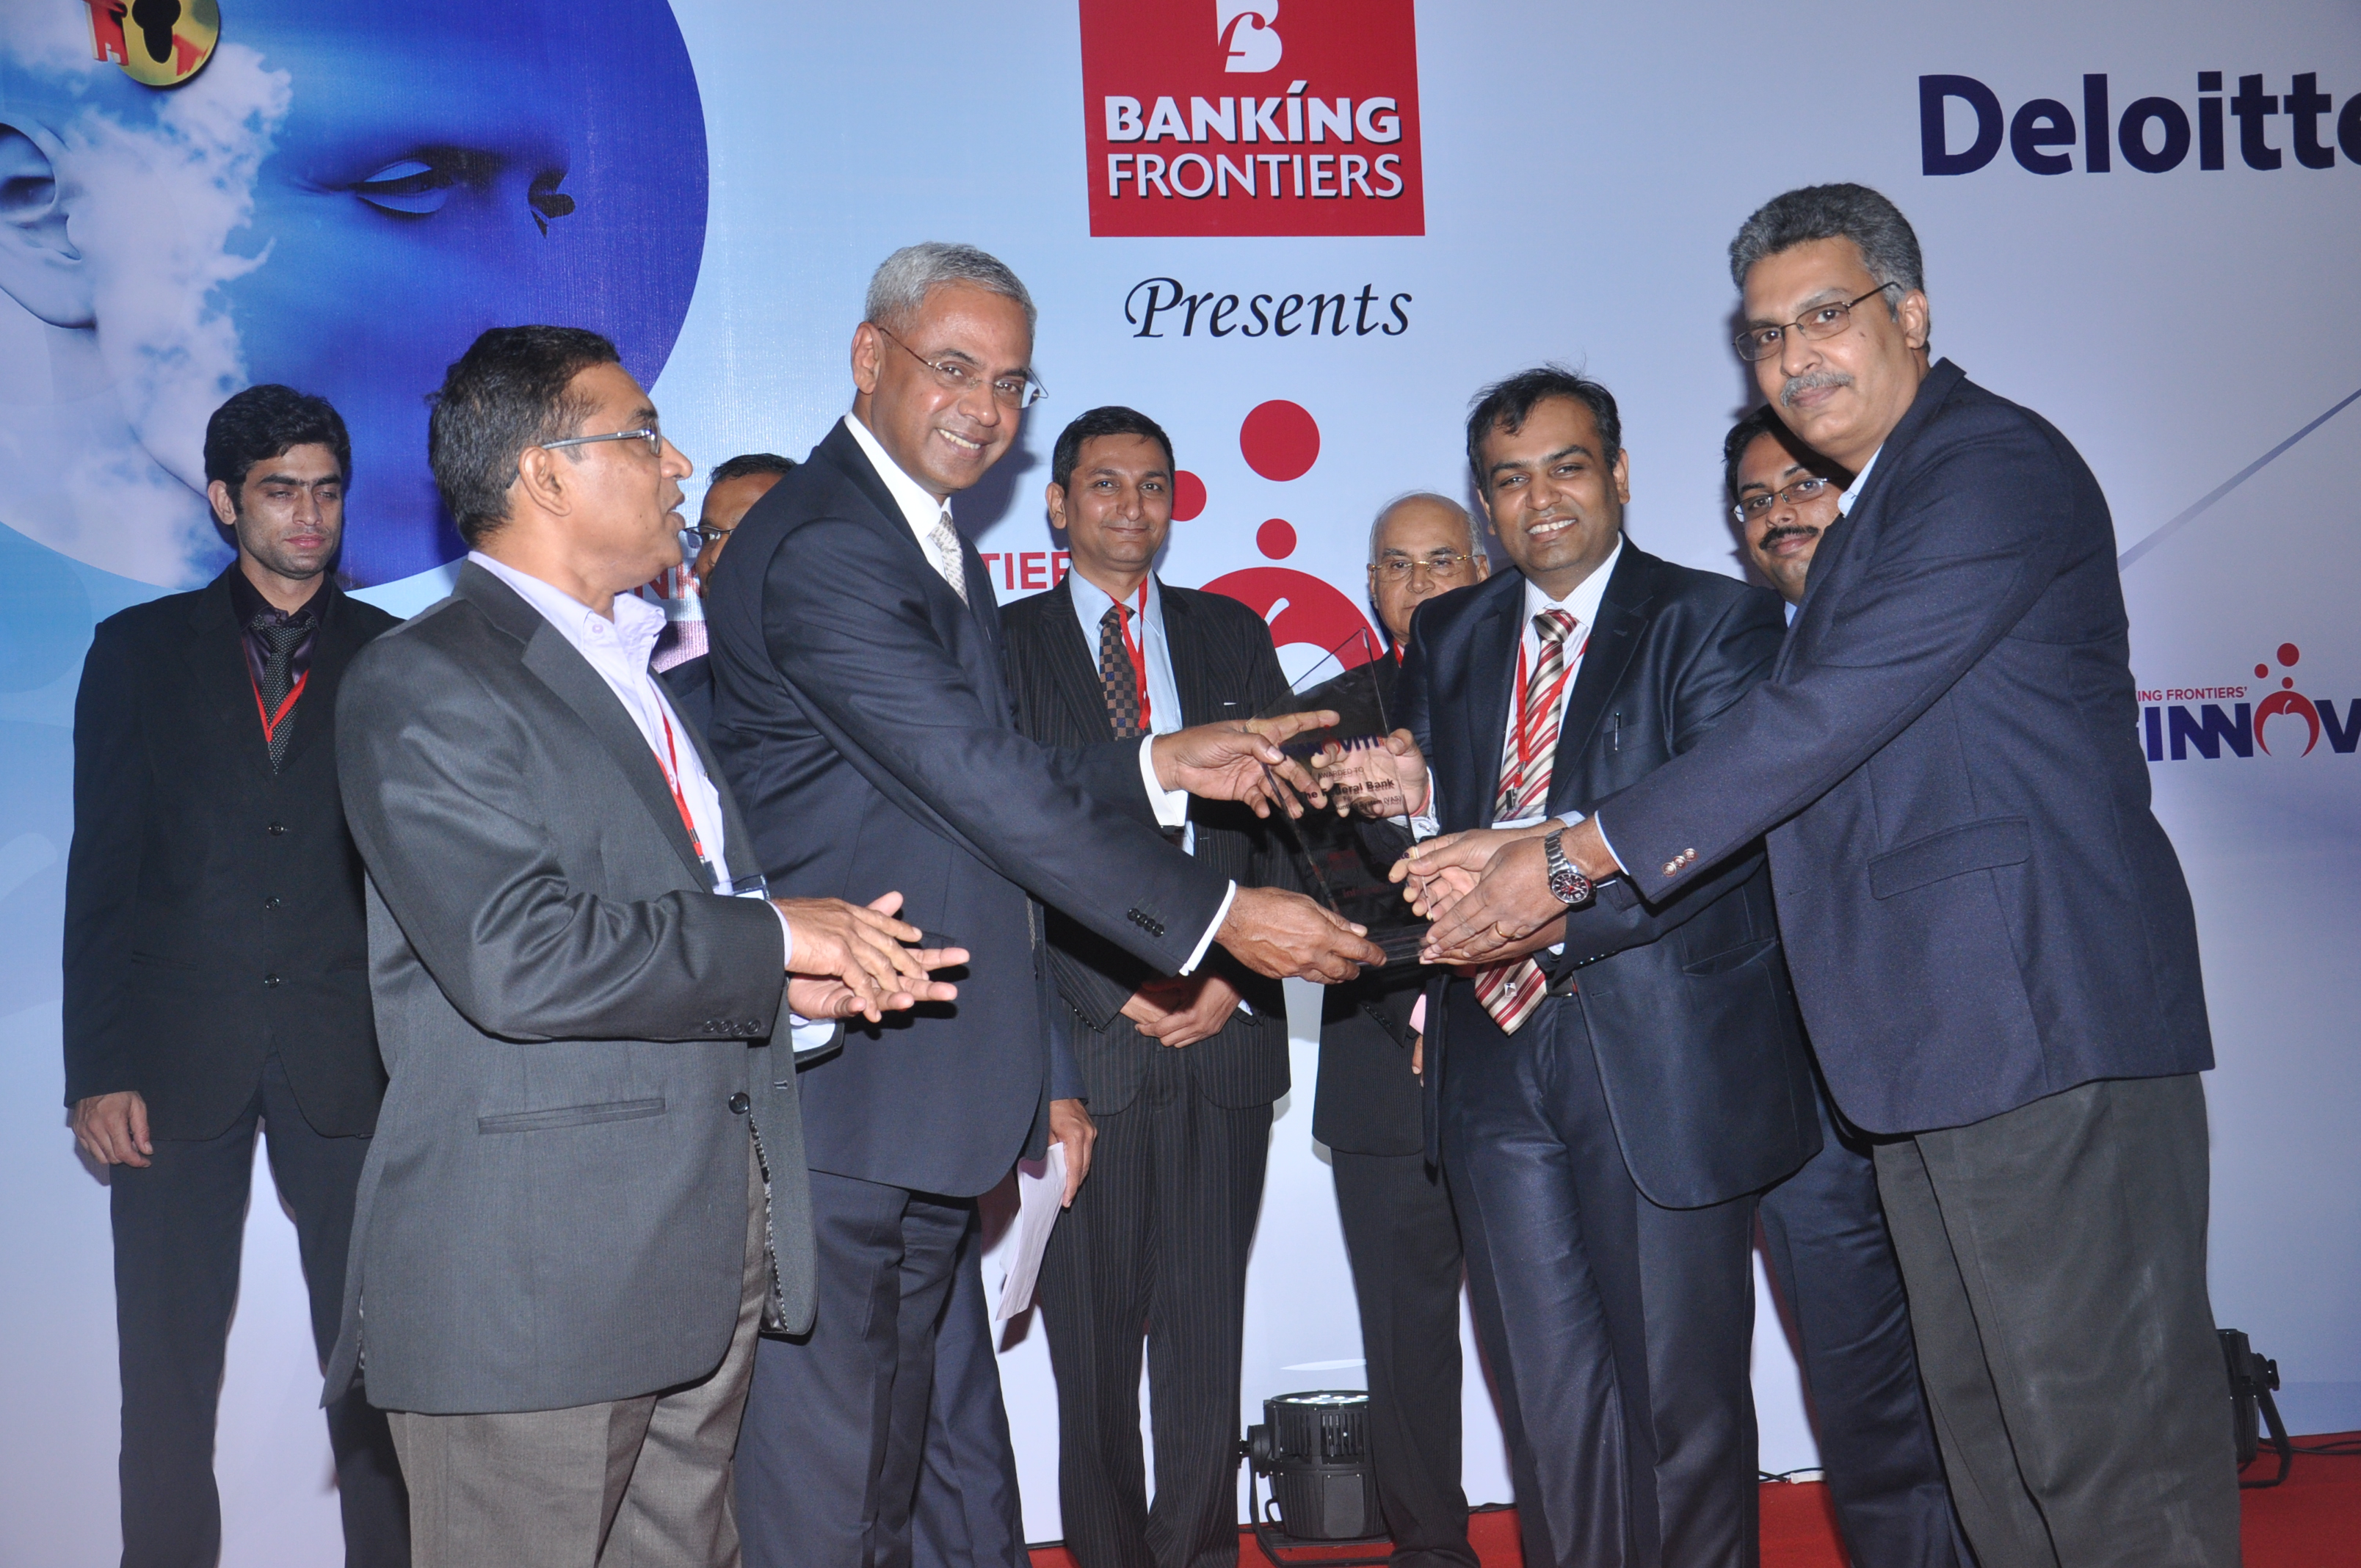 Finnoviti Award - Federal Bank won the Banking Frontier's Finnoviti 2013 Award for its innovation Virtual Accounting System (VAS). In photograph: Shri Abraham Chacko, Executive Director and Shri .Sunny K P, DGM and Head-IT and Operations receiving the award at a function held at Mumbai. VAS is an e–collection product developed in-house by Federal Bank IT team. The application is designed to streamline online remittance of funds by the clients of our customers. The facility is available for multiple payment channels like RTGS, NEFT, Net Banking, Cheques and for cash remittances. Finnoviti is an annual innovation congress recognizing excellence in innovations in the BFSI sector. Banks are recognized on their efforts at improving customer convenience, accelerating bank's productivity, mitigating risks and improving customer satisfaction by leveraging innovations.